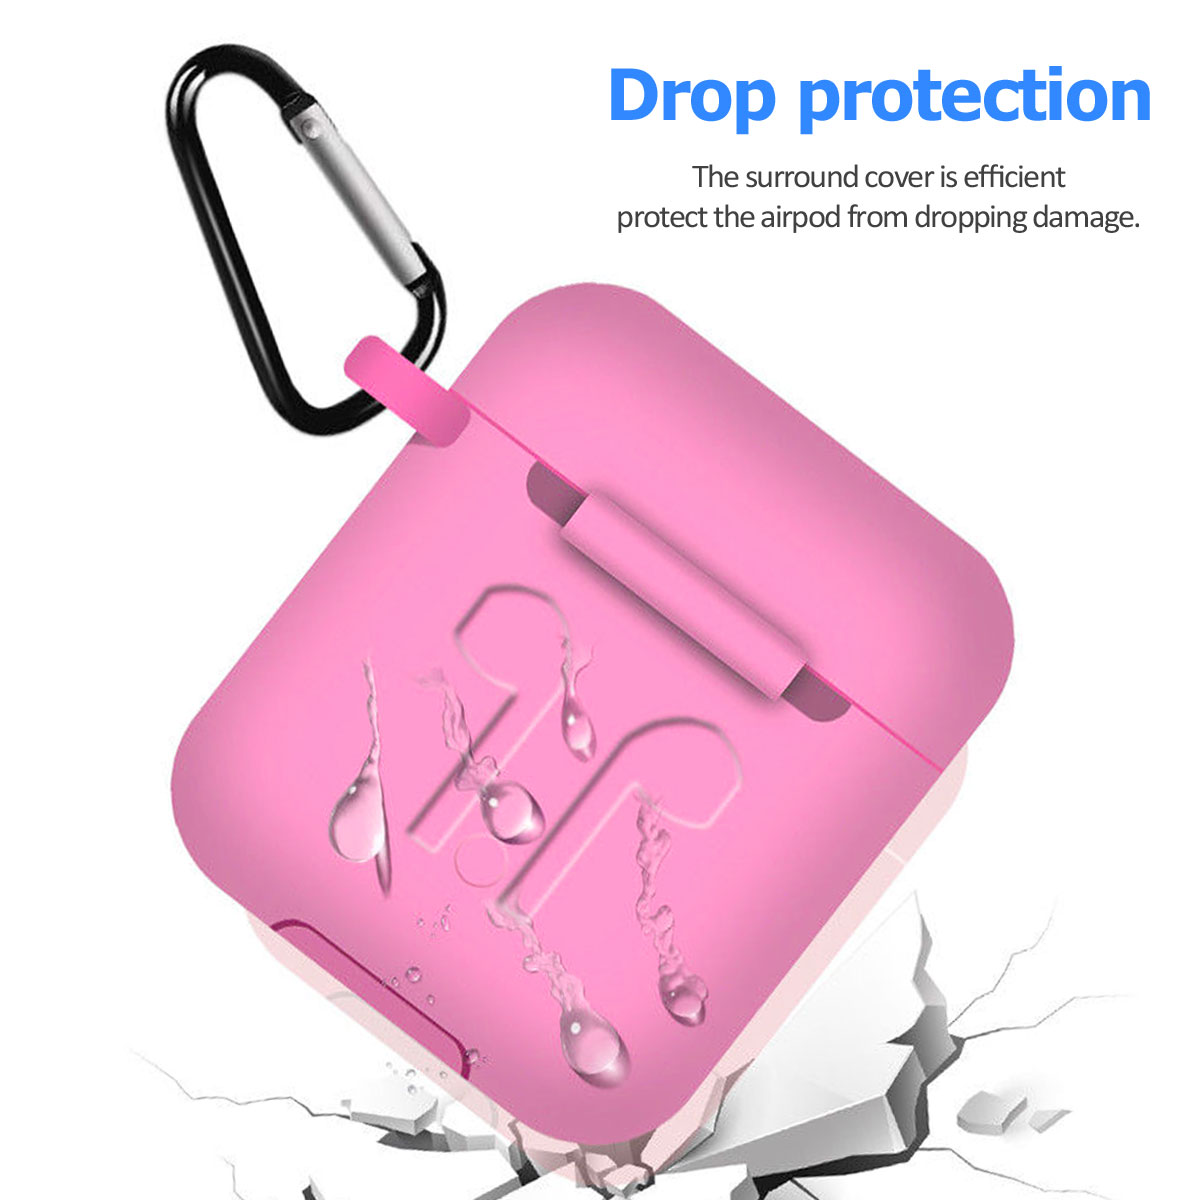 Silicone-Ruggged-Case-Cover-Earbuds-For-Apple-AirPods-2nd-Gen-Accessories-2019 thumbnail 49